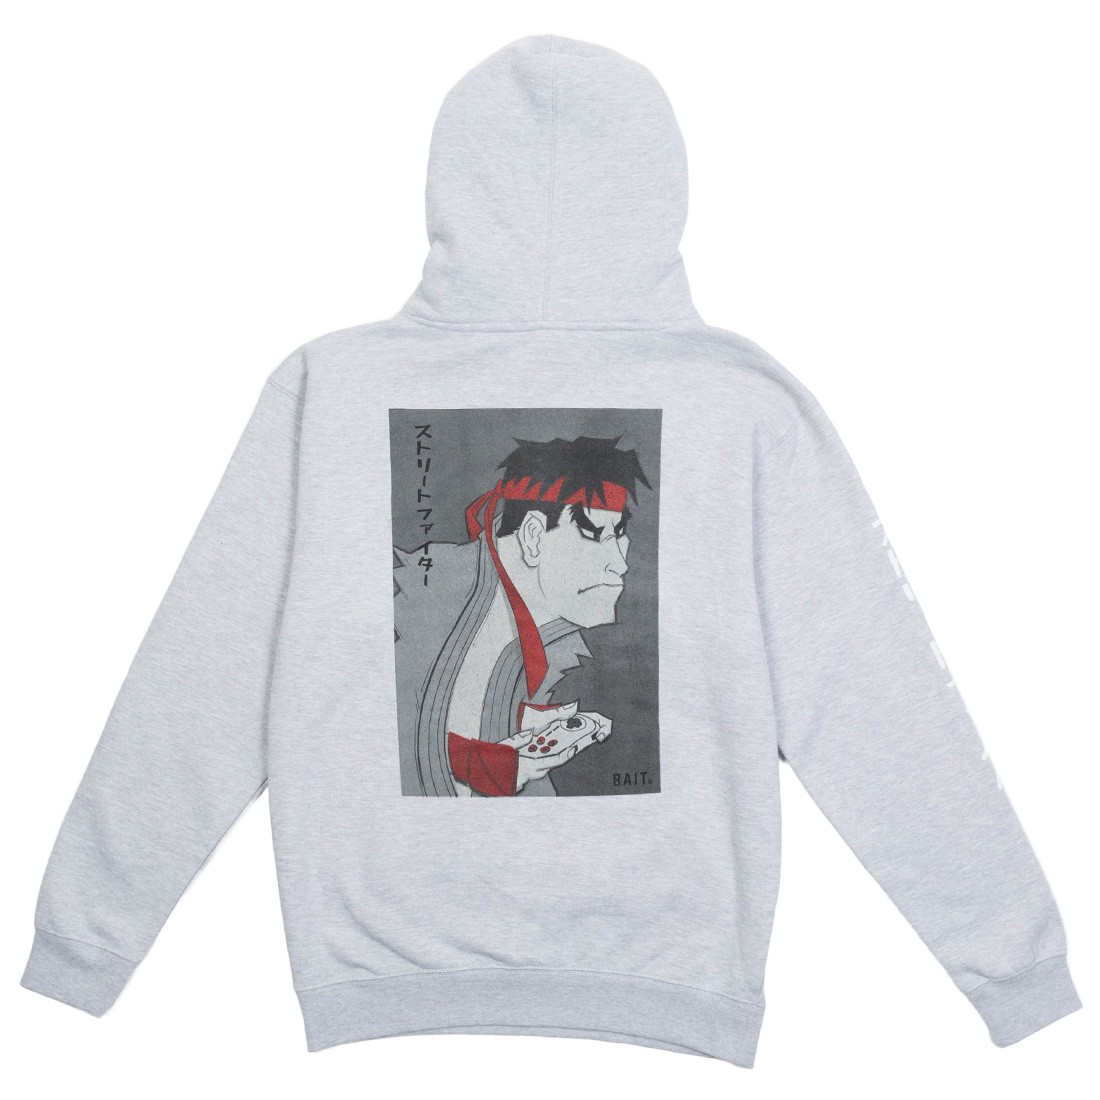 BAIT x Street Fighter x Kidokyo Men Ryu Hoody (gray / heather)